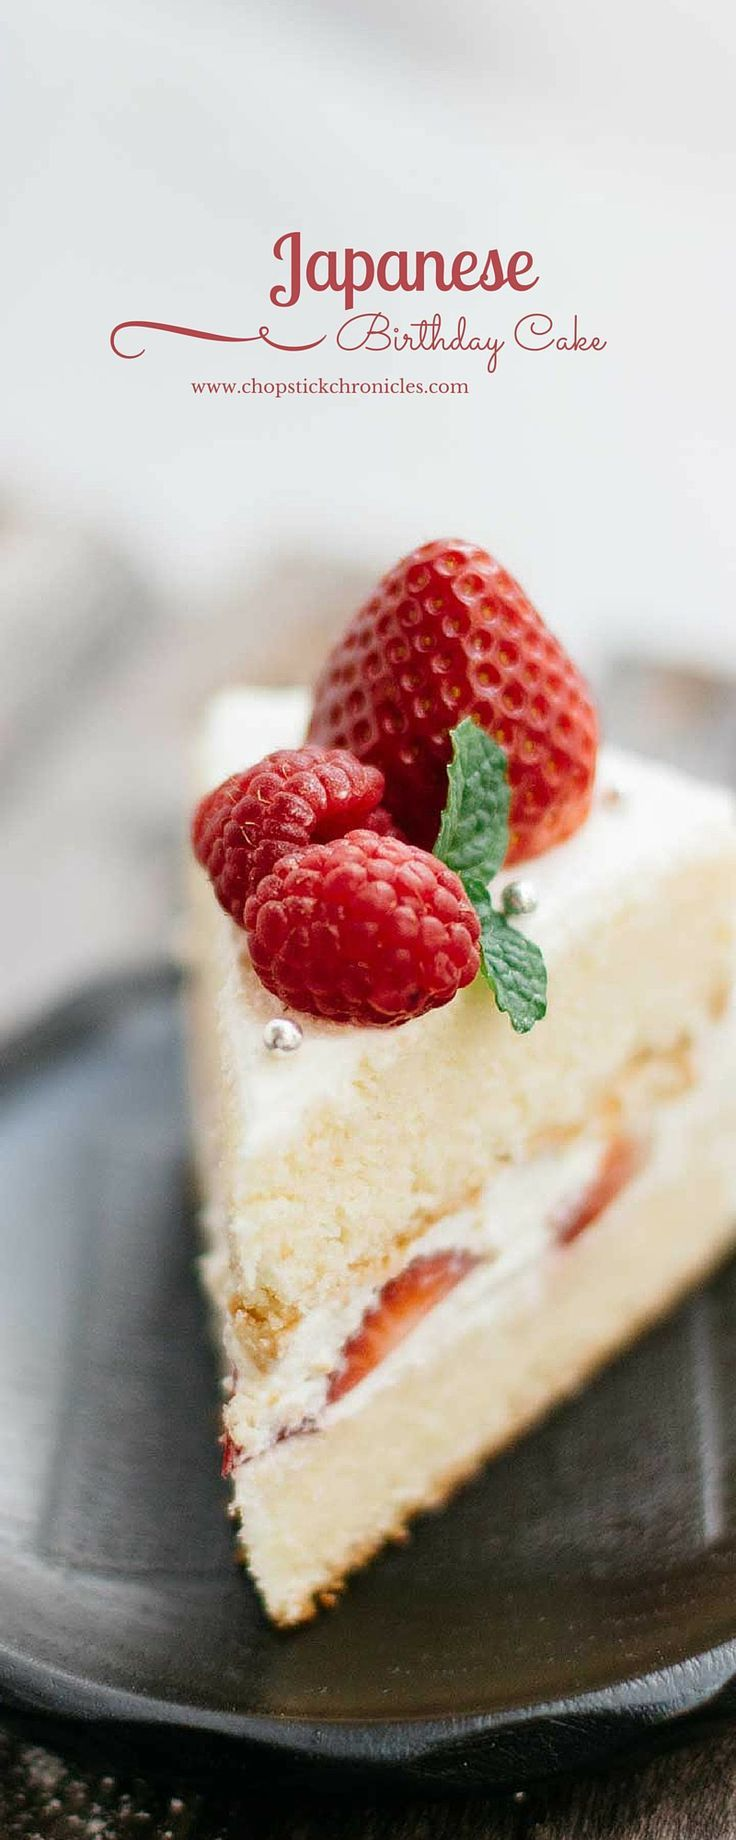 Japanese Birthday Cake by chopstickchronicles #Cake #Strawberries